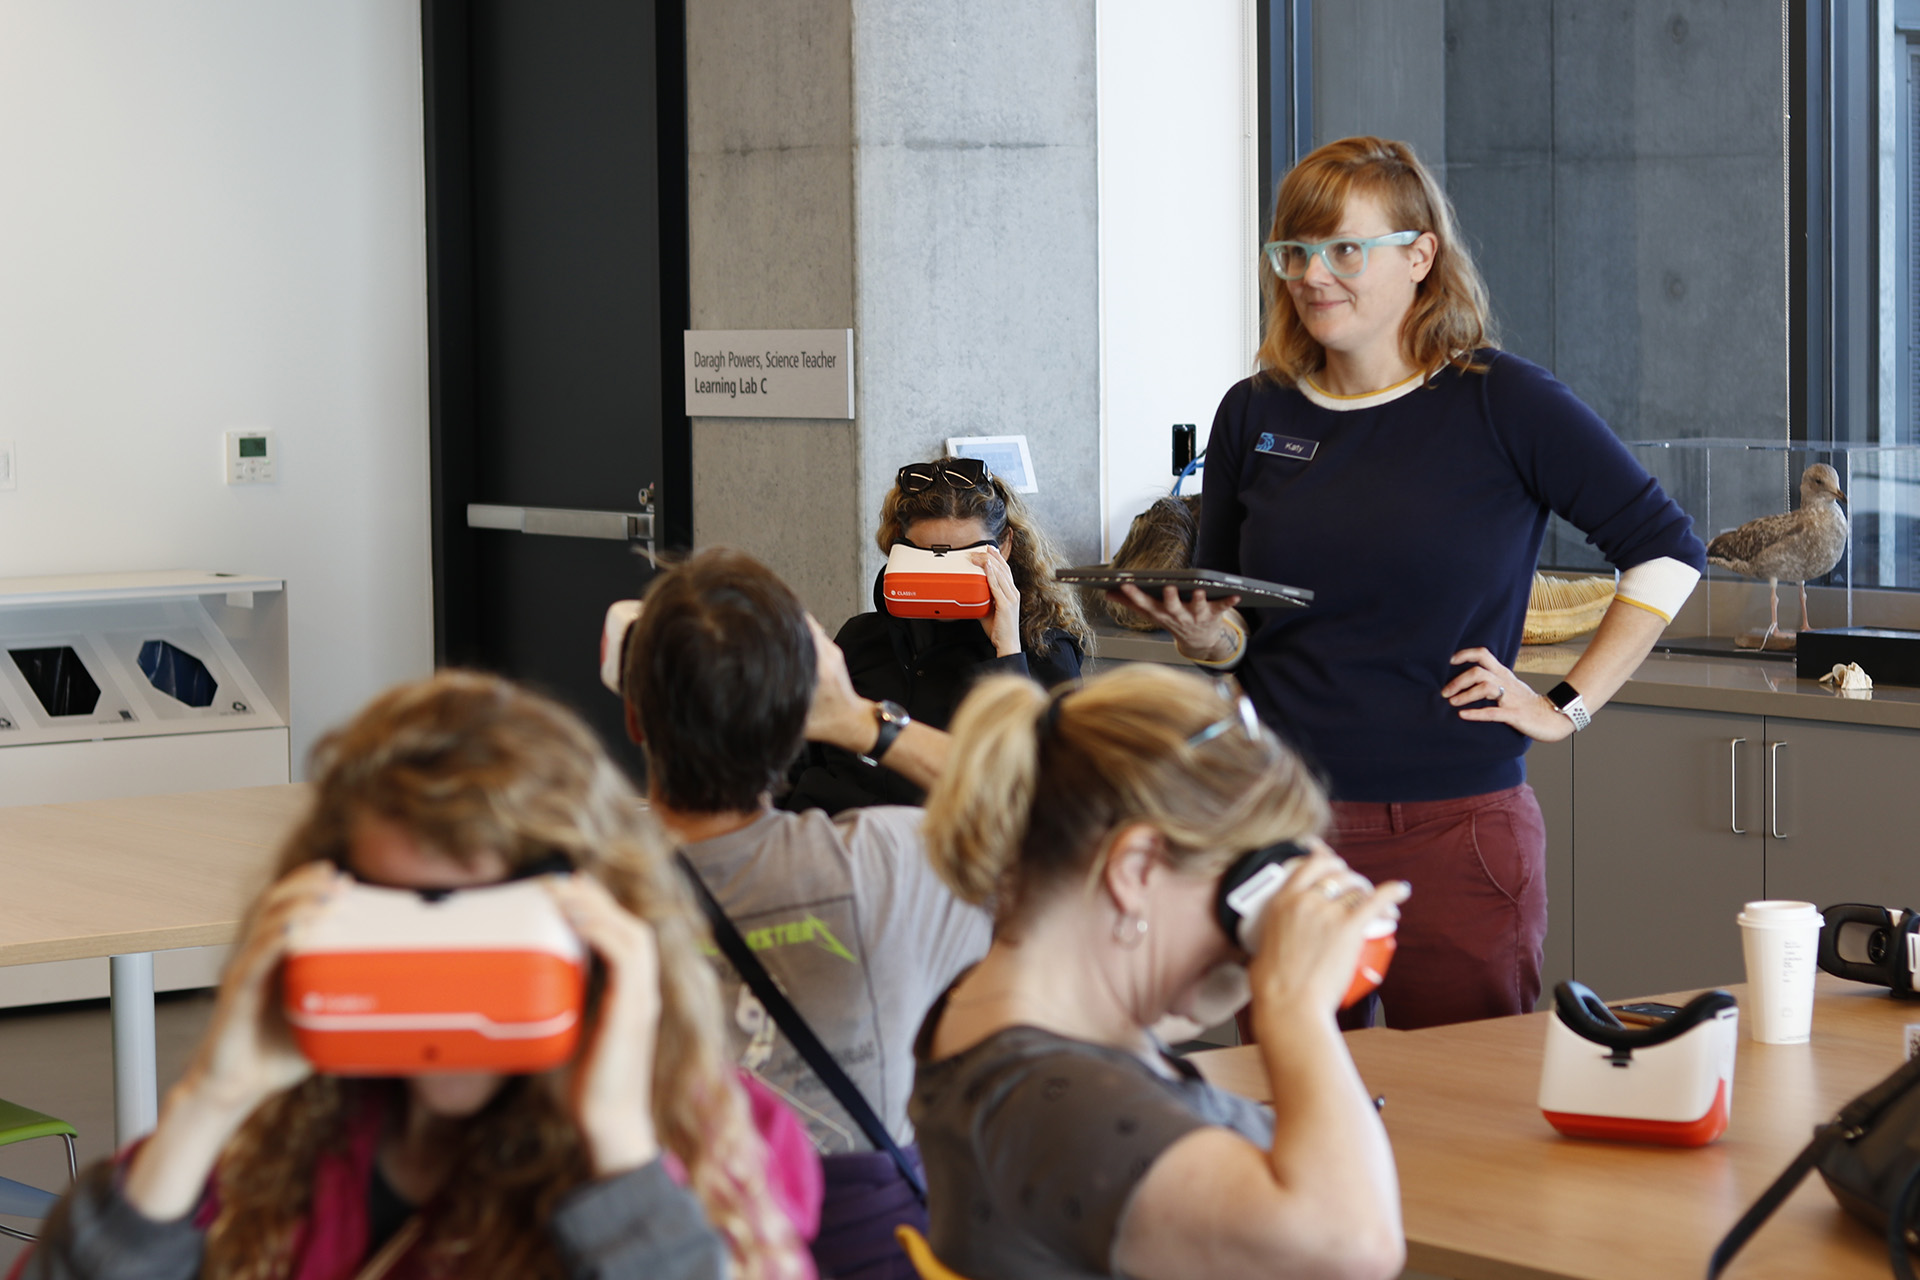 Katy Scott engages teachers in a VR experience at the Bechtel Center